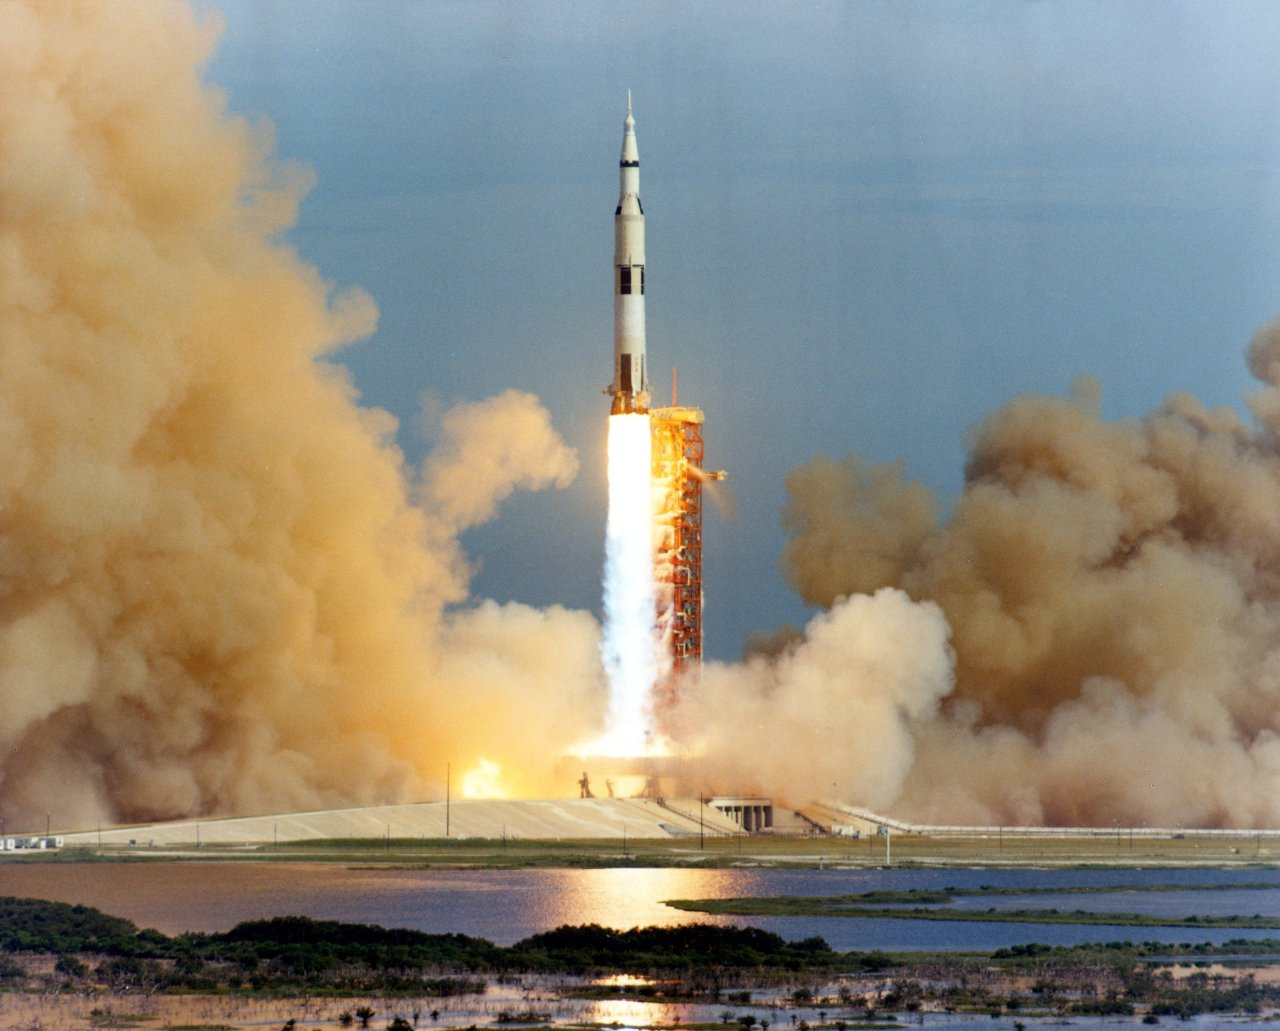 "The Incredible Story Of The Apollo 13 Accident ""The Apollo 13 malfunction was caused by an explosion and rupture of oxygen tank no. 2 in the service module. The explosion ruptured a line or damaged a valve in the no. 1 oxygen tank, causing it to lose oxygen rapidly. The service module bay no.4 cover was blown off. All oxygen stores were lost within about 3 hours, along with loss of water, electrical power, and use of the propulsion system."" (X)"